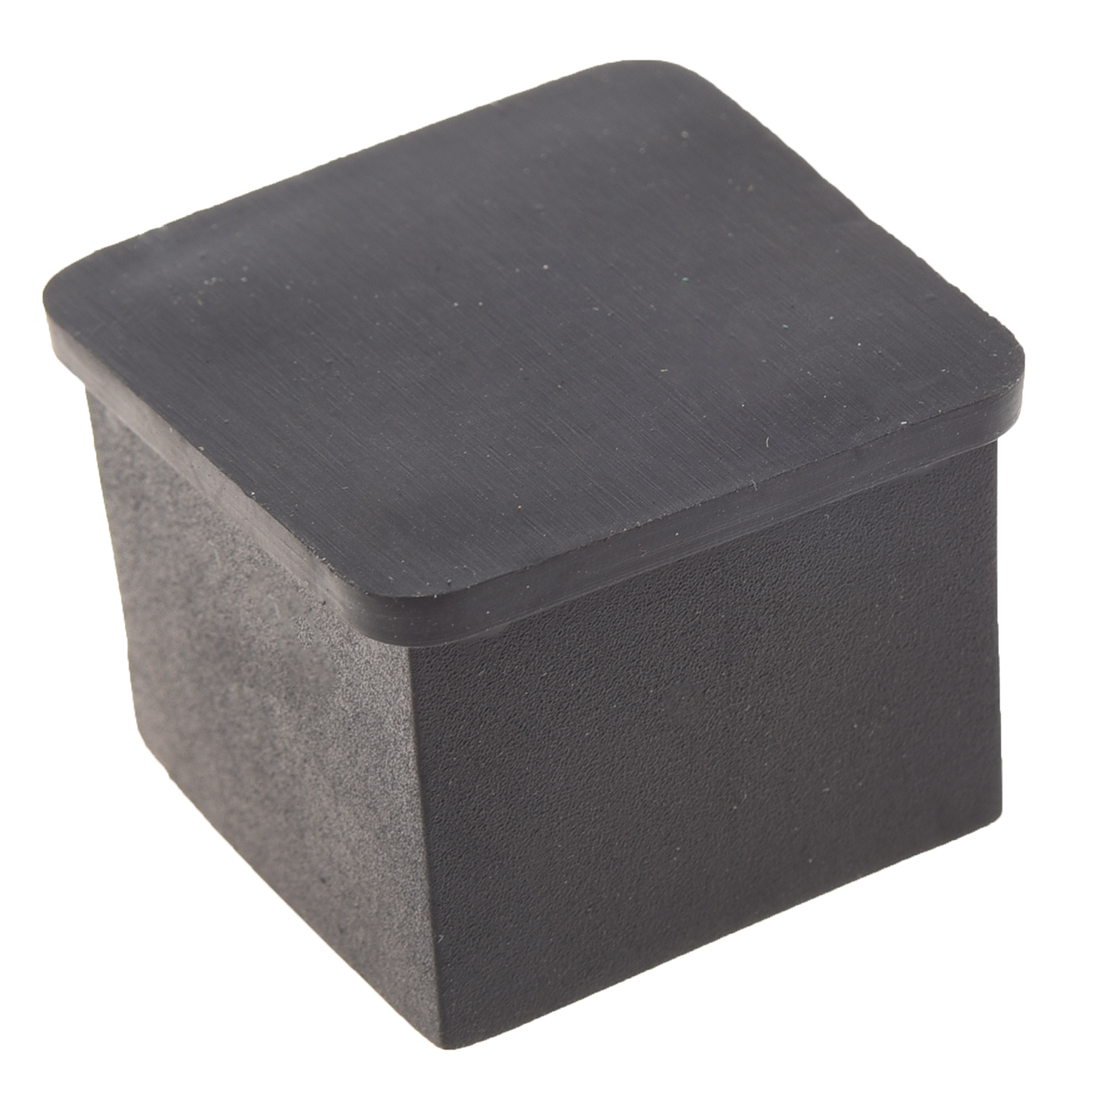 Promotion! 15Pcs Black Rubber 30mmx30mm Square Chair Foot Cover Chair Leg Caps  Table Foot CoverPromotion! 15Pcs Black Rubber 30mmx30mm Square Chair Foot Cover Chair Leg Caps  Table Foot Cover